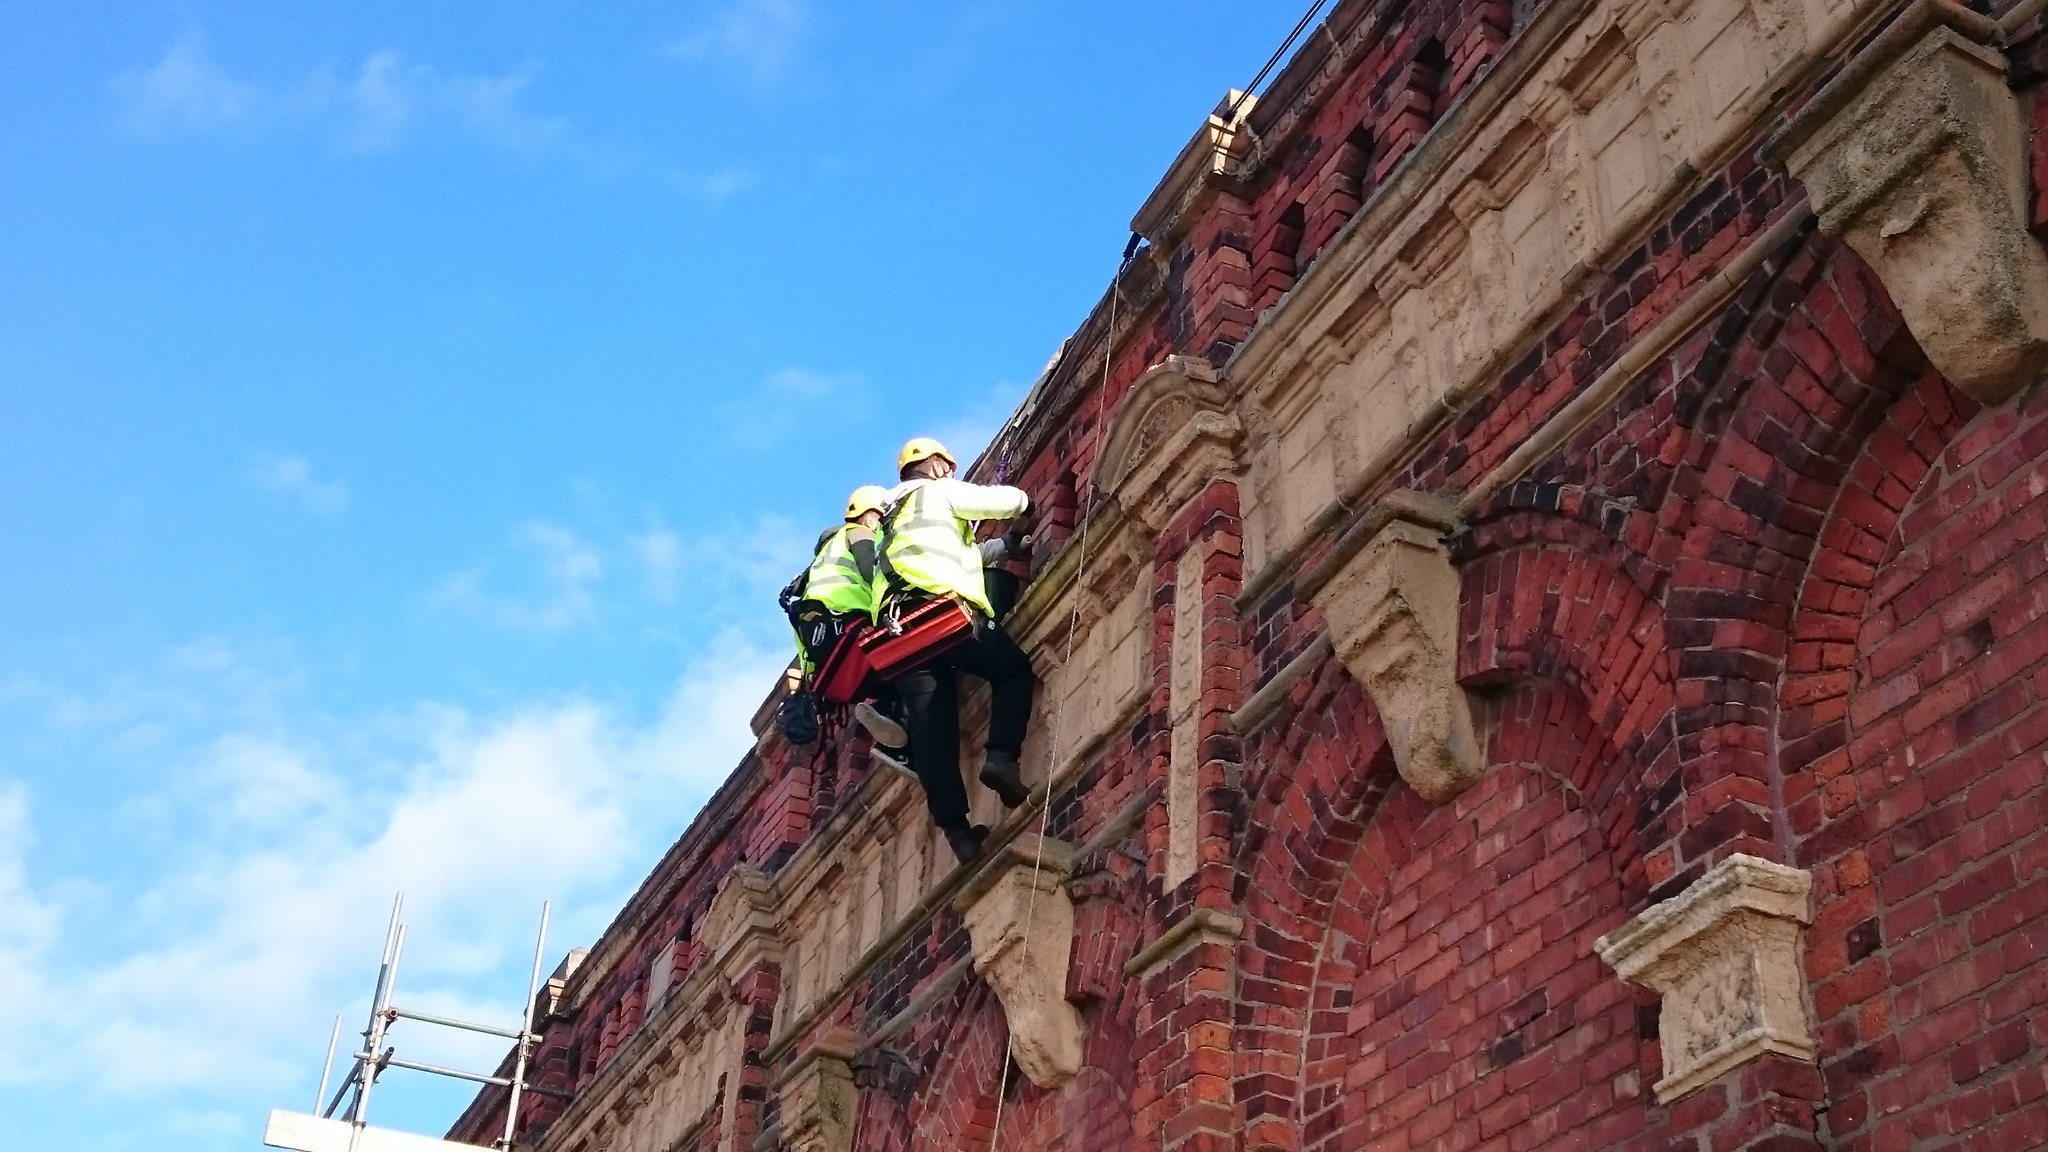 Two rope access technicians working at height on the winter gardens in Blackpool carrying out brickwork repair and pointing works.